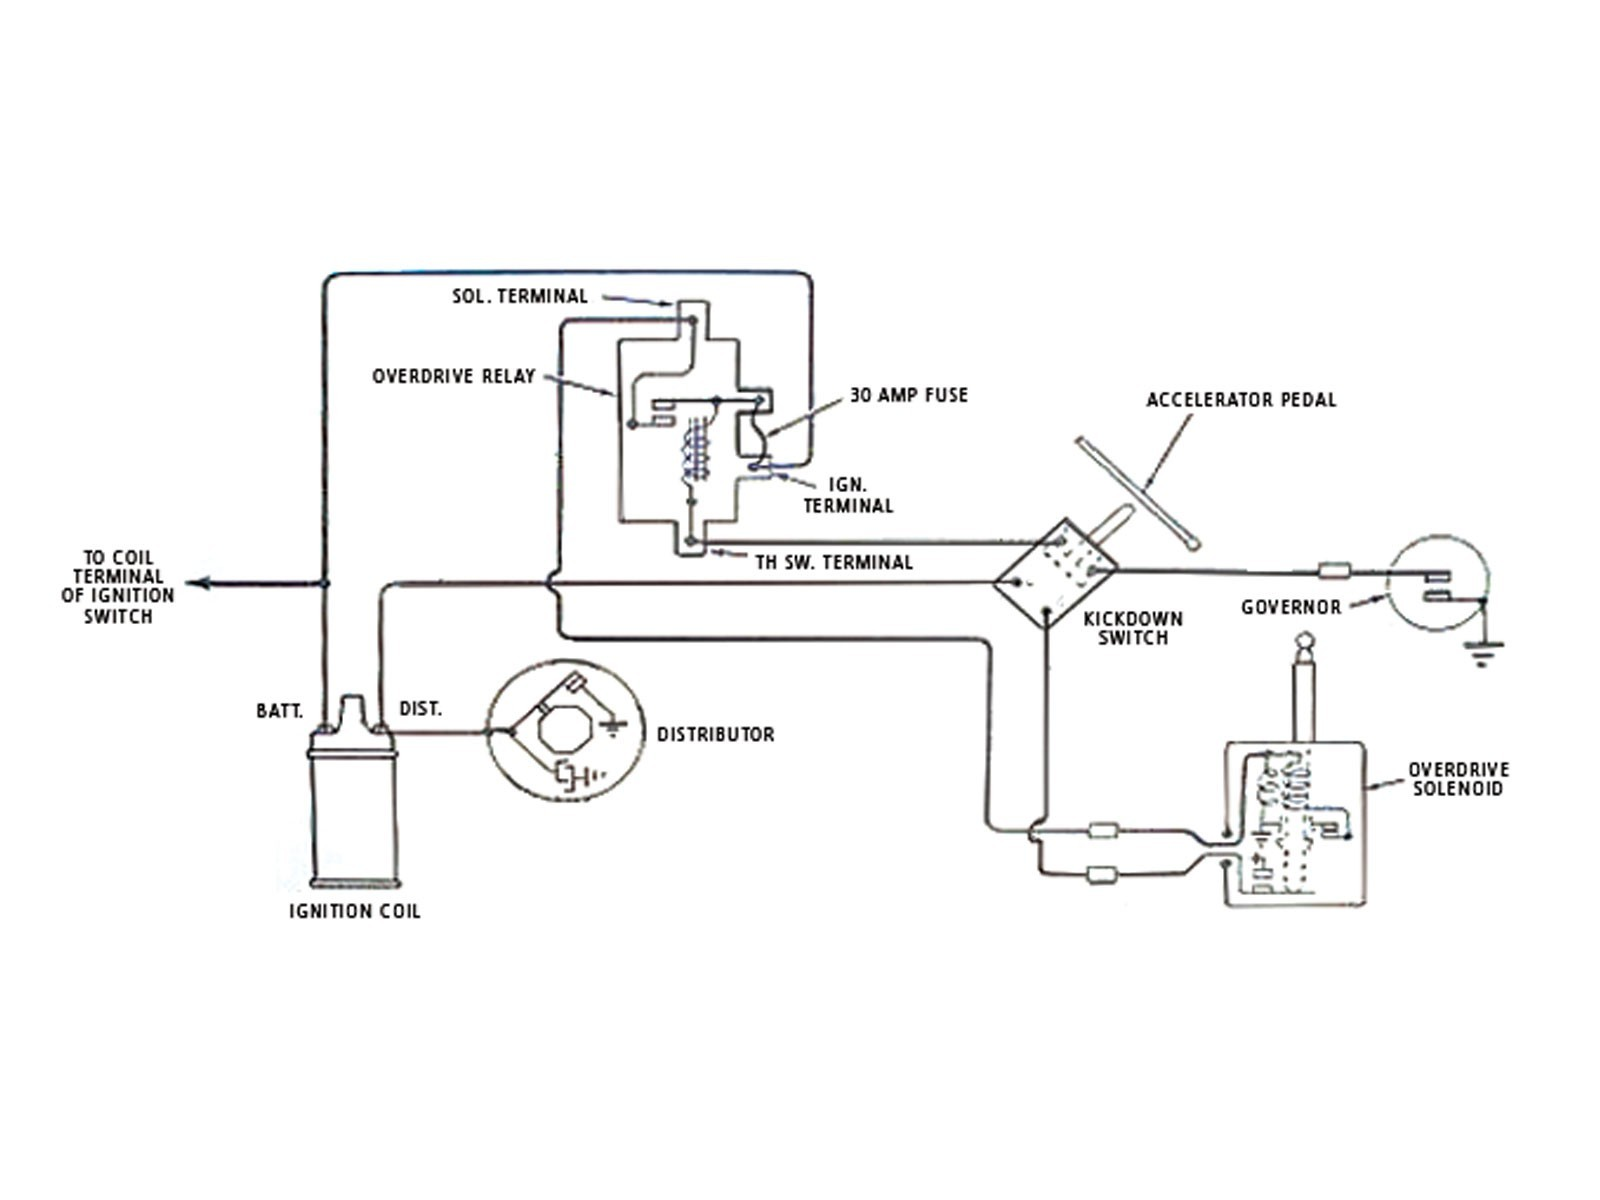 Basic Engine Wiring Diagram Bike Chinese Atv 1996 Bmw 328i Wire Harness Best Ignition Coil Of